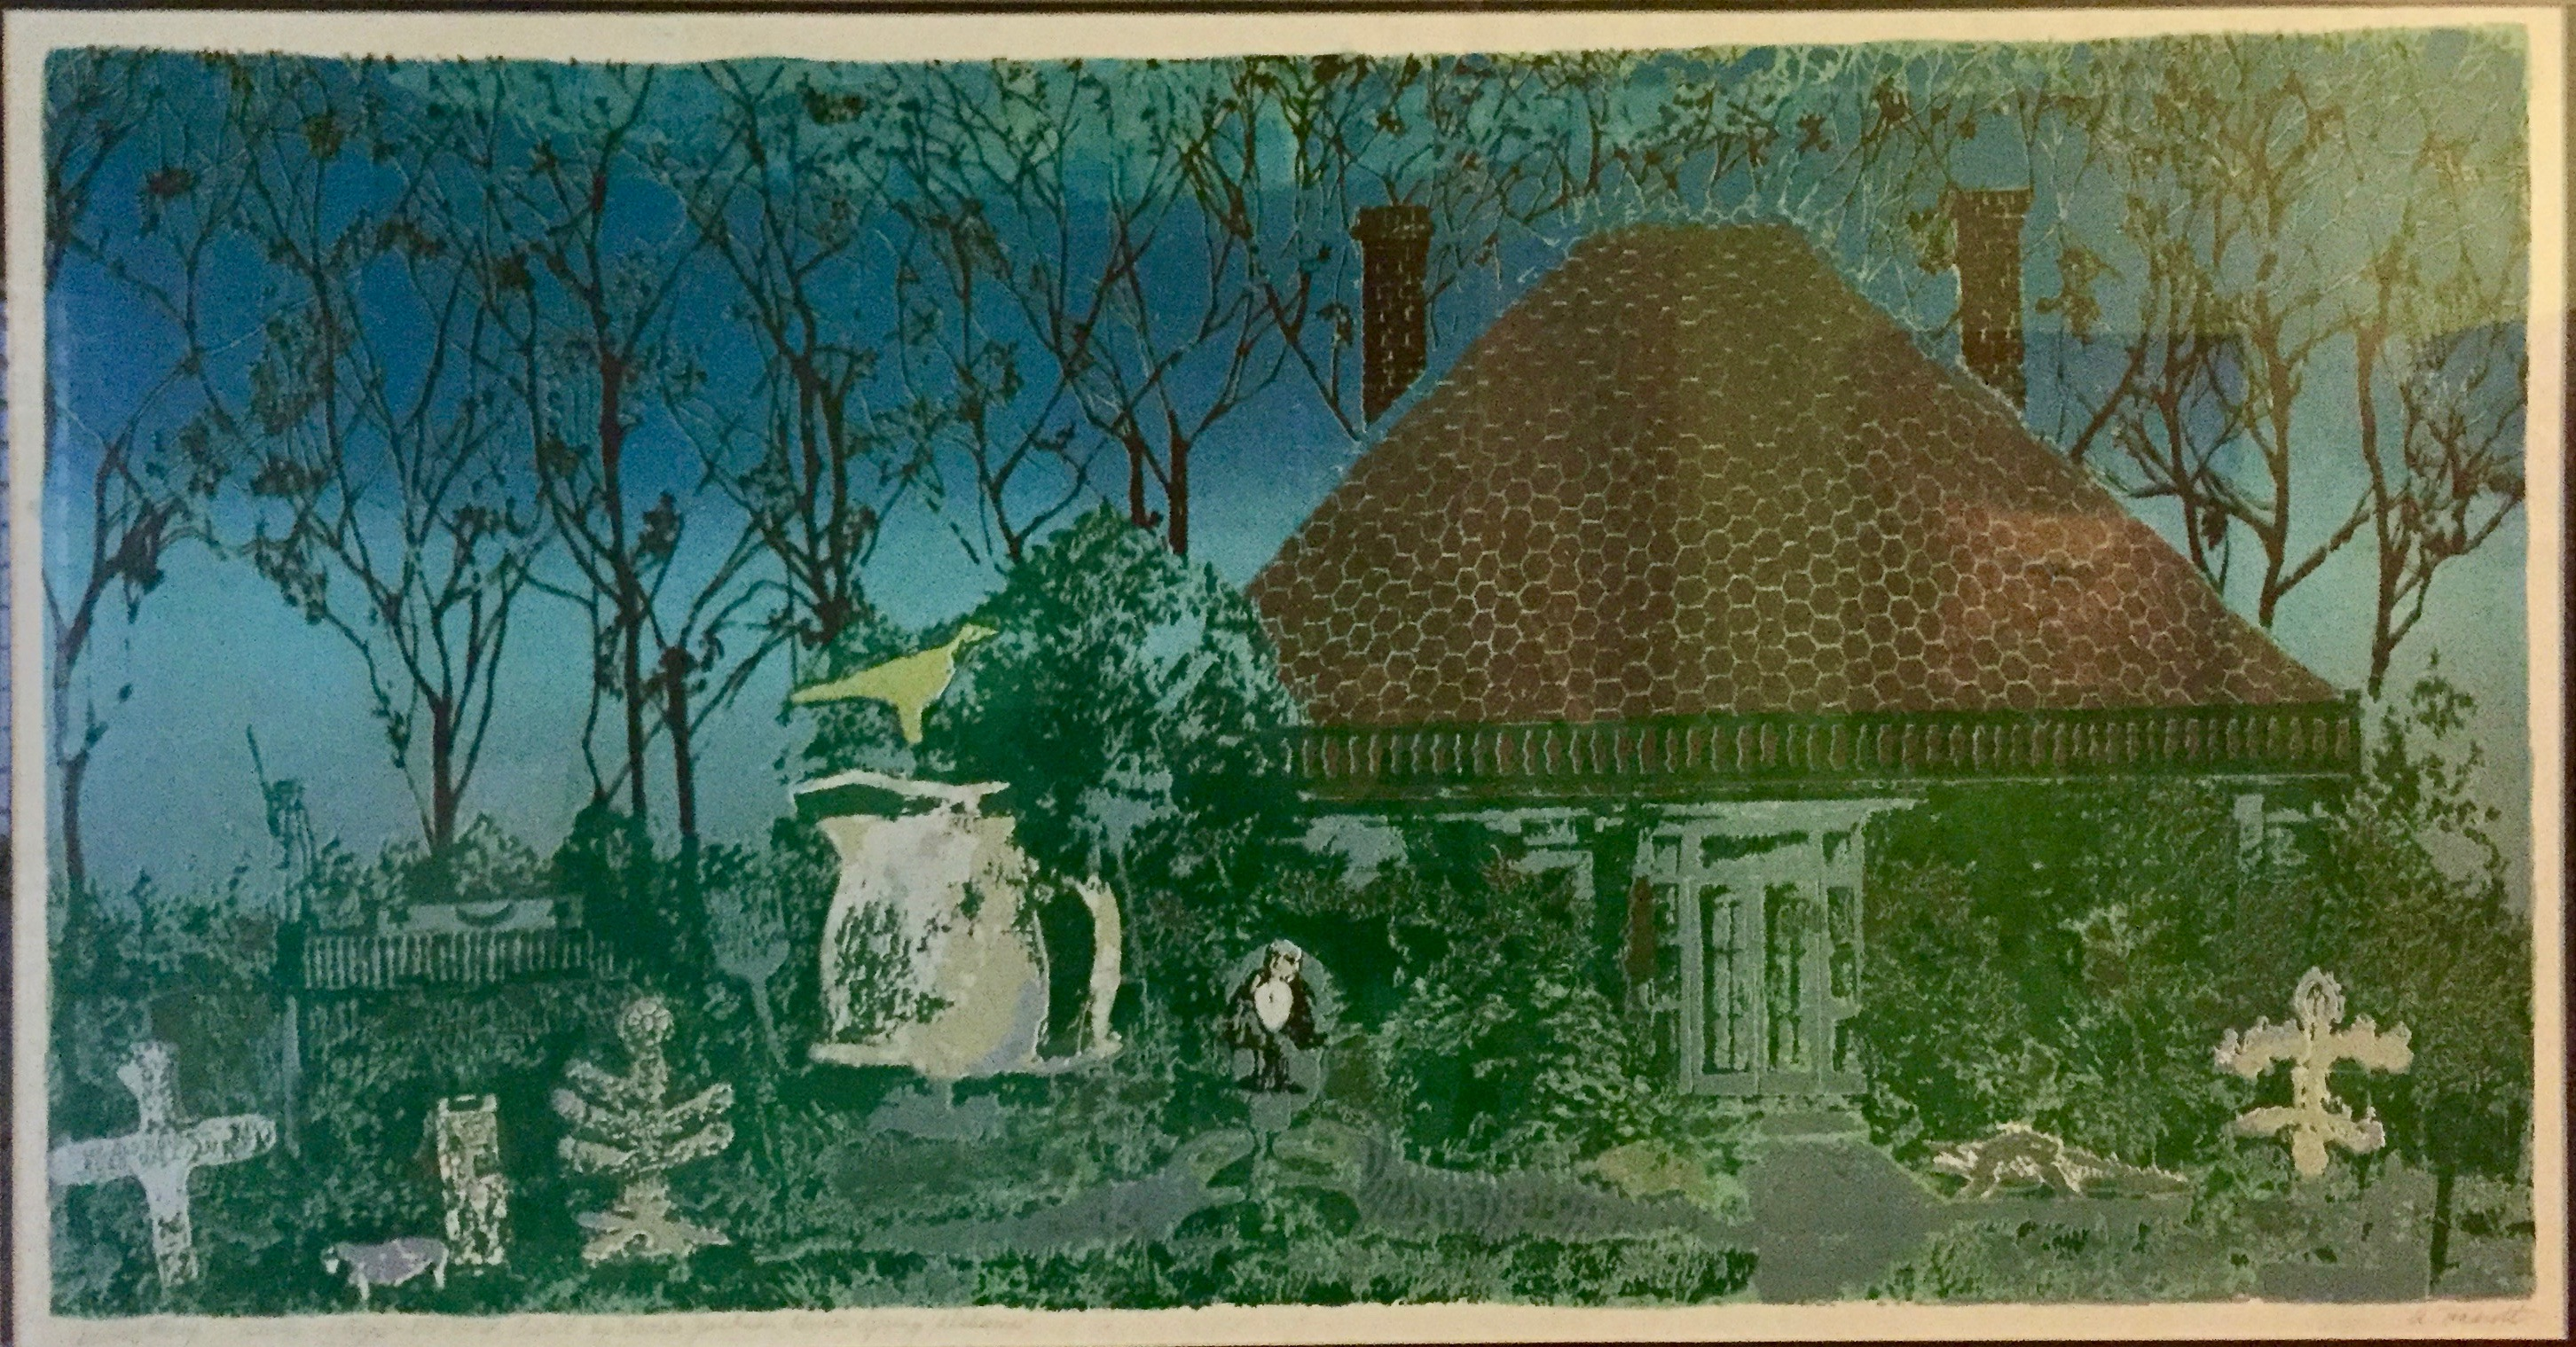 Anton Haardt's print of a garden in Montgomery, Alabama, that our dear friend Boogie gave us when we got married in August 1989.